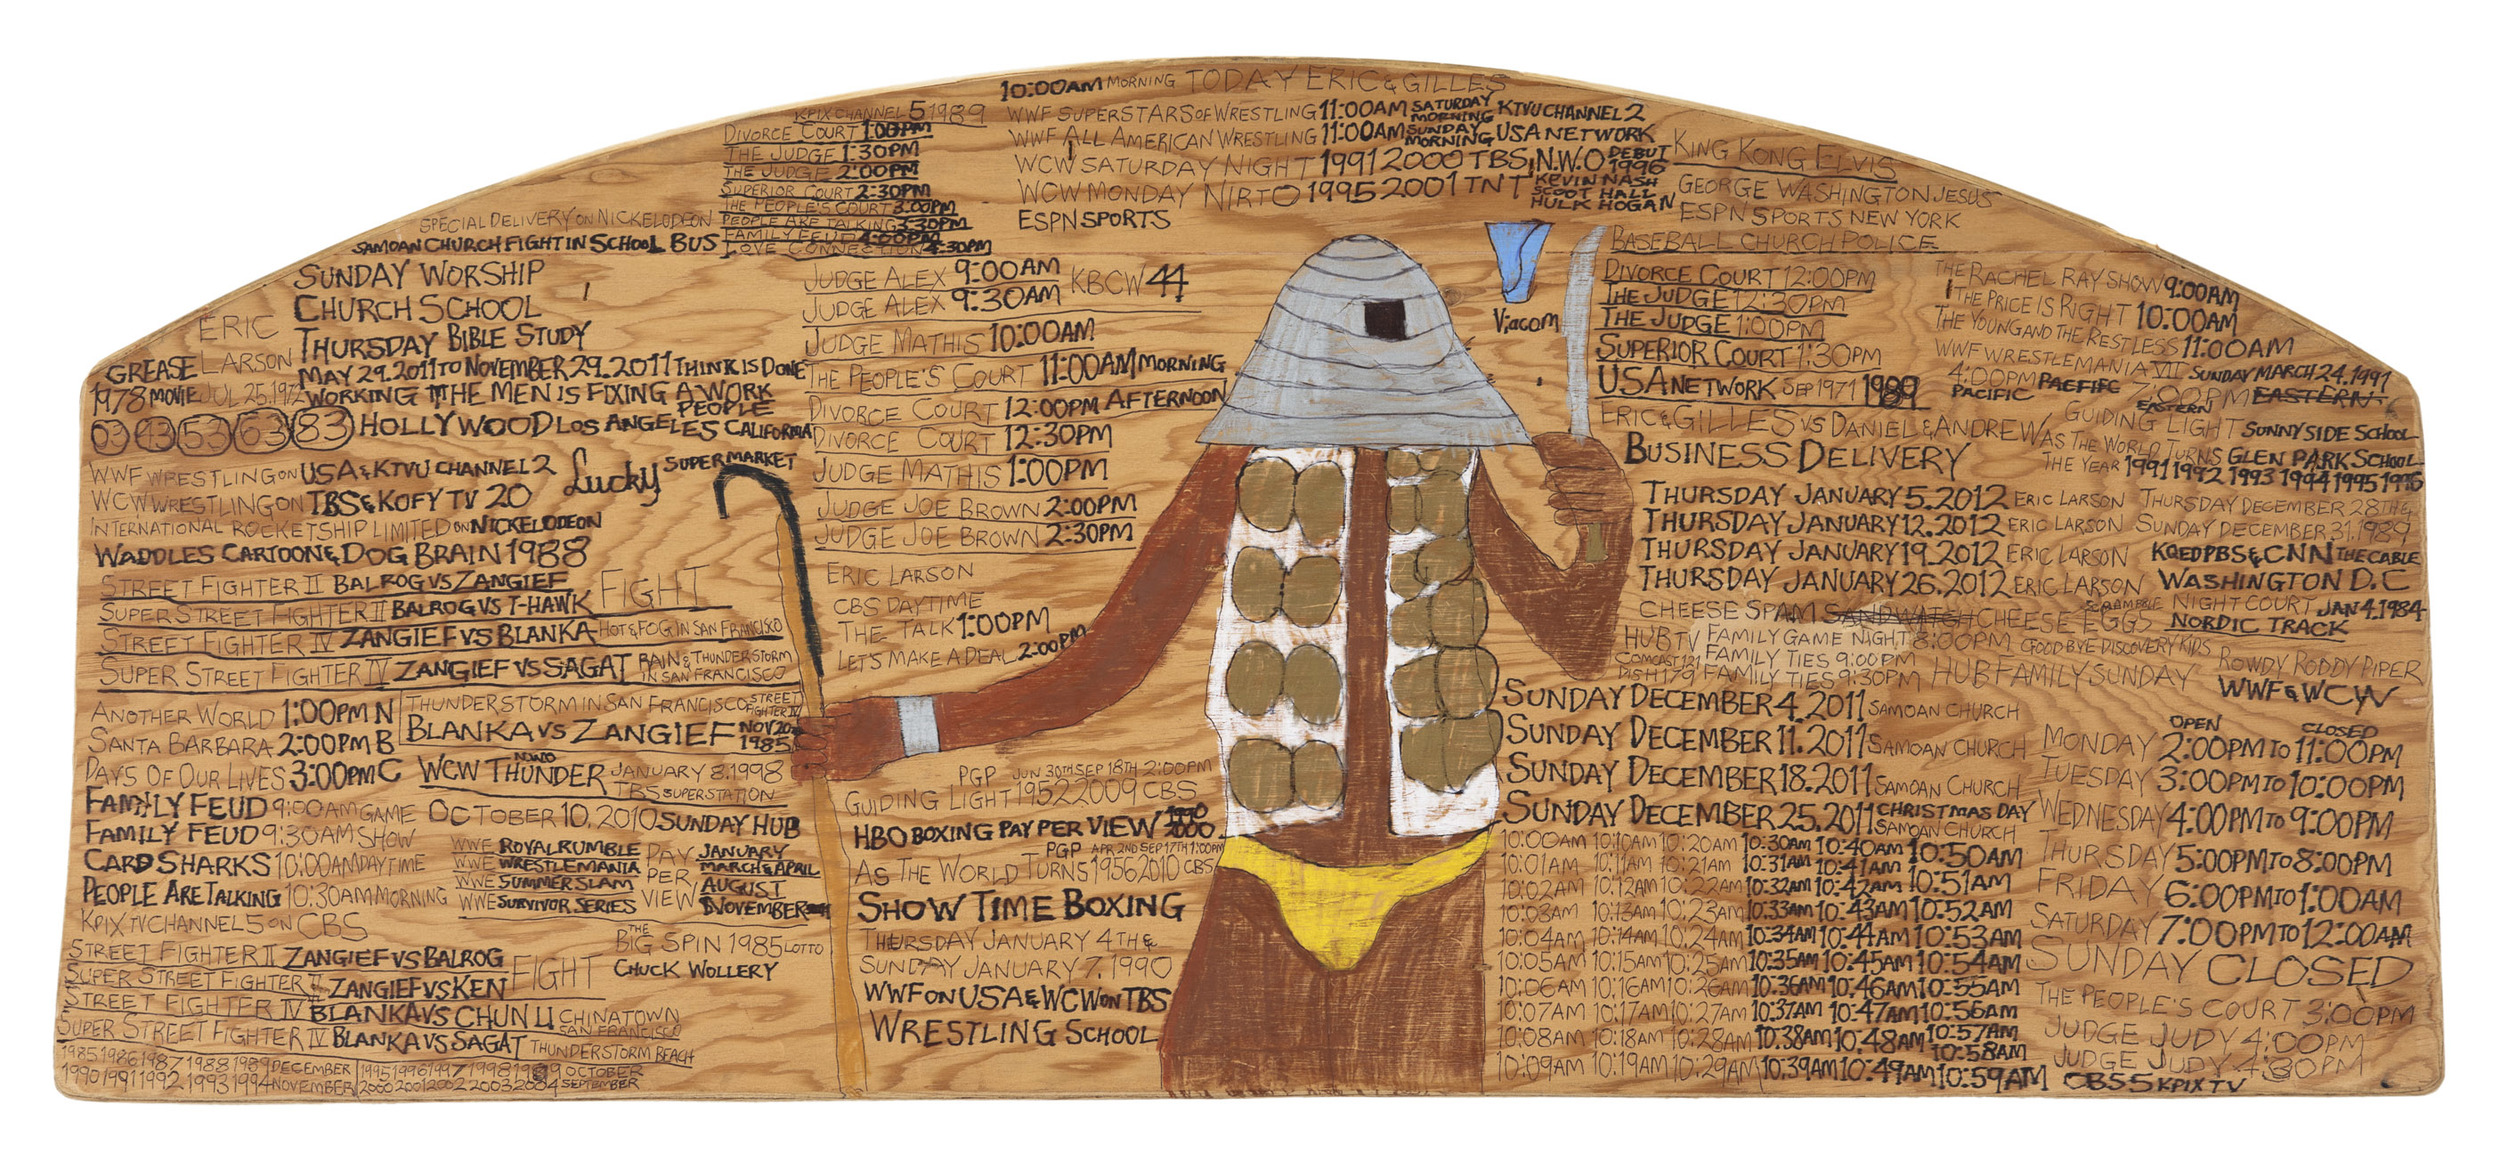 Daniel Green,  Business Delivery , 2011, Mixed media on wood, 13 x 29 x 1 inches